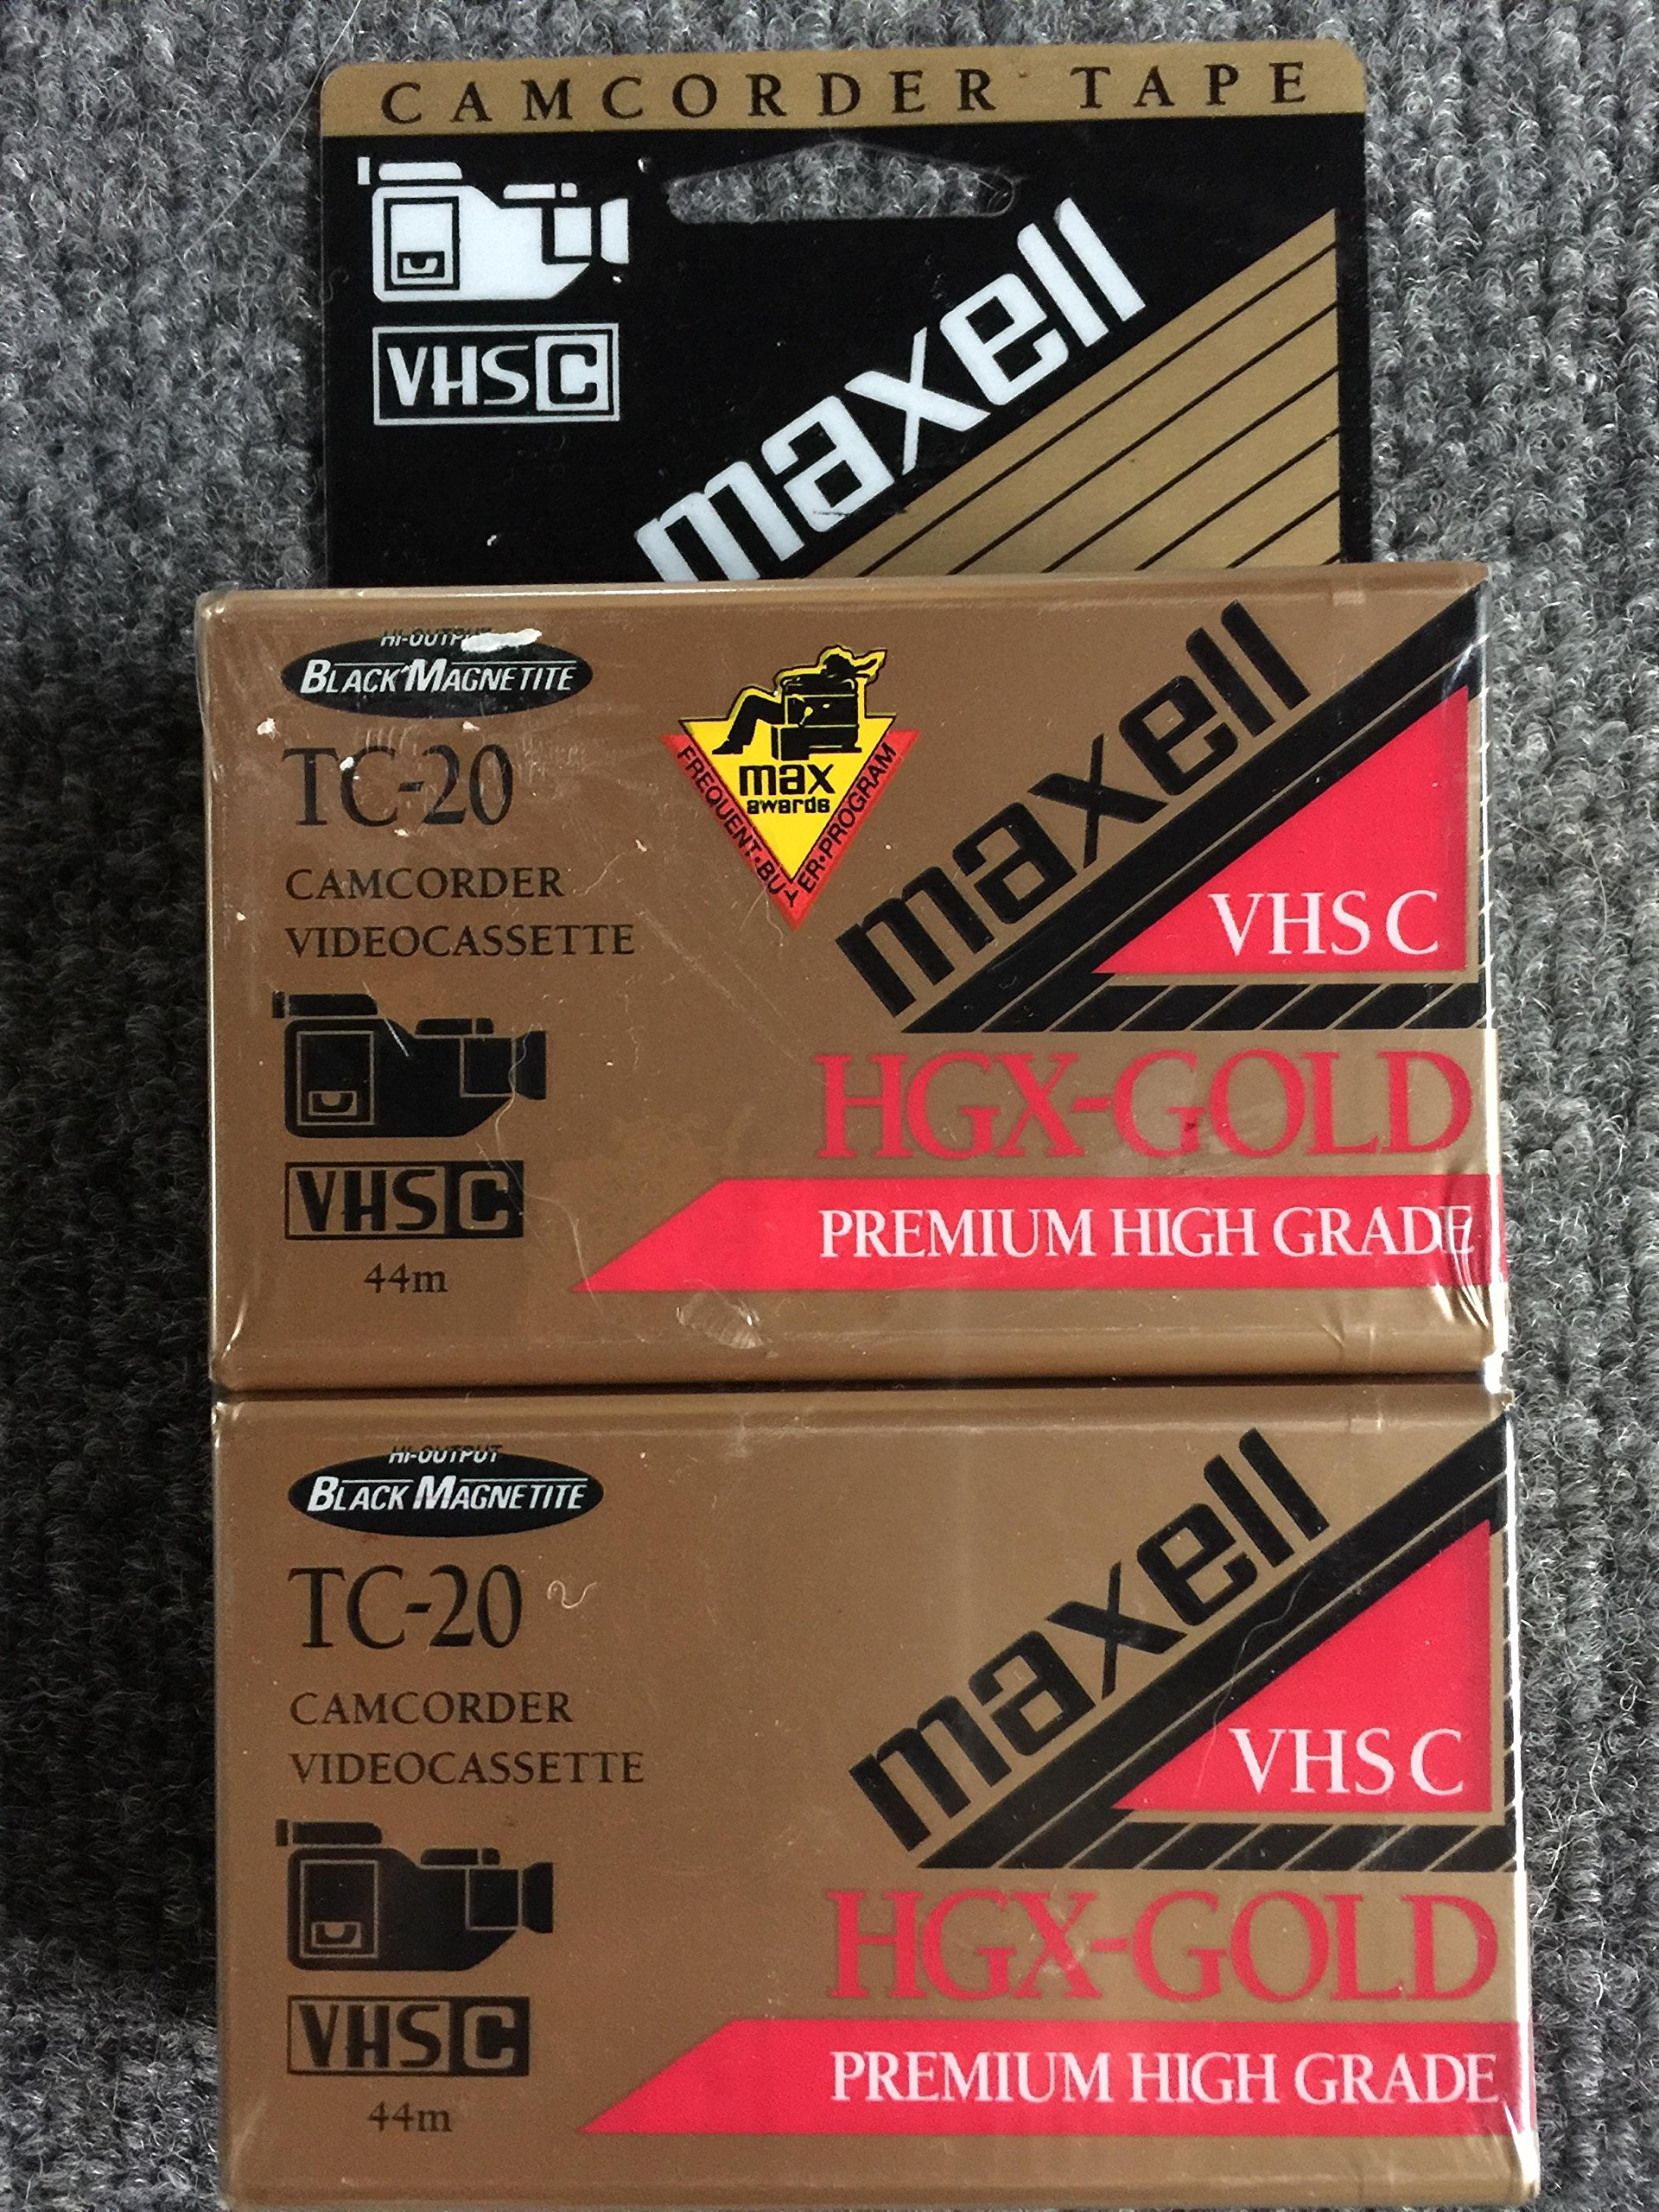 Maxell TC-20 HGX Gold VHSC Camcorder Videocassette by Maxell